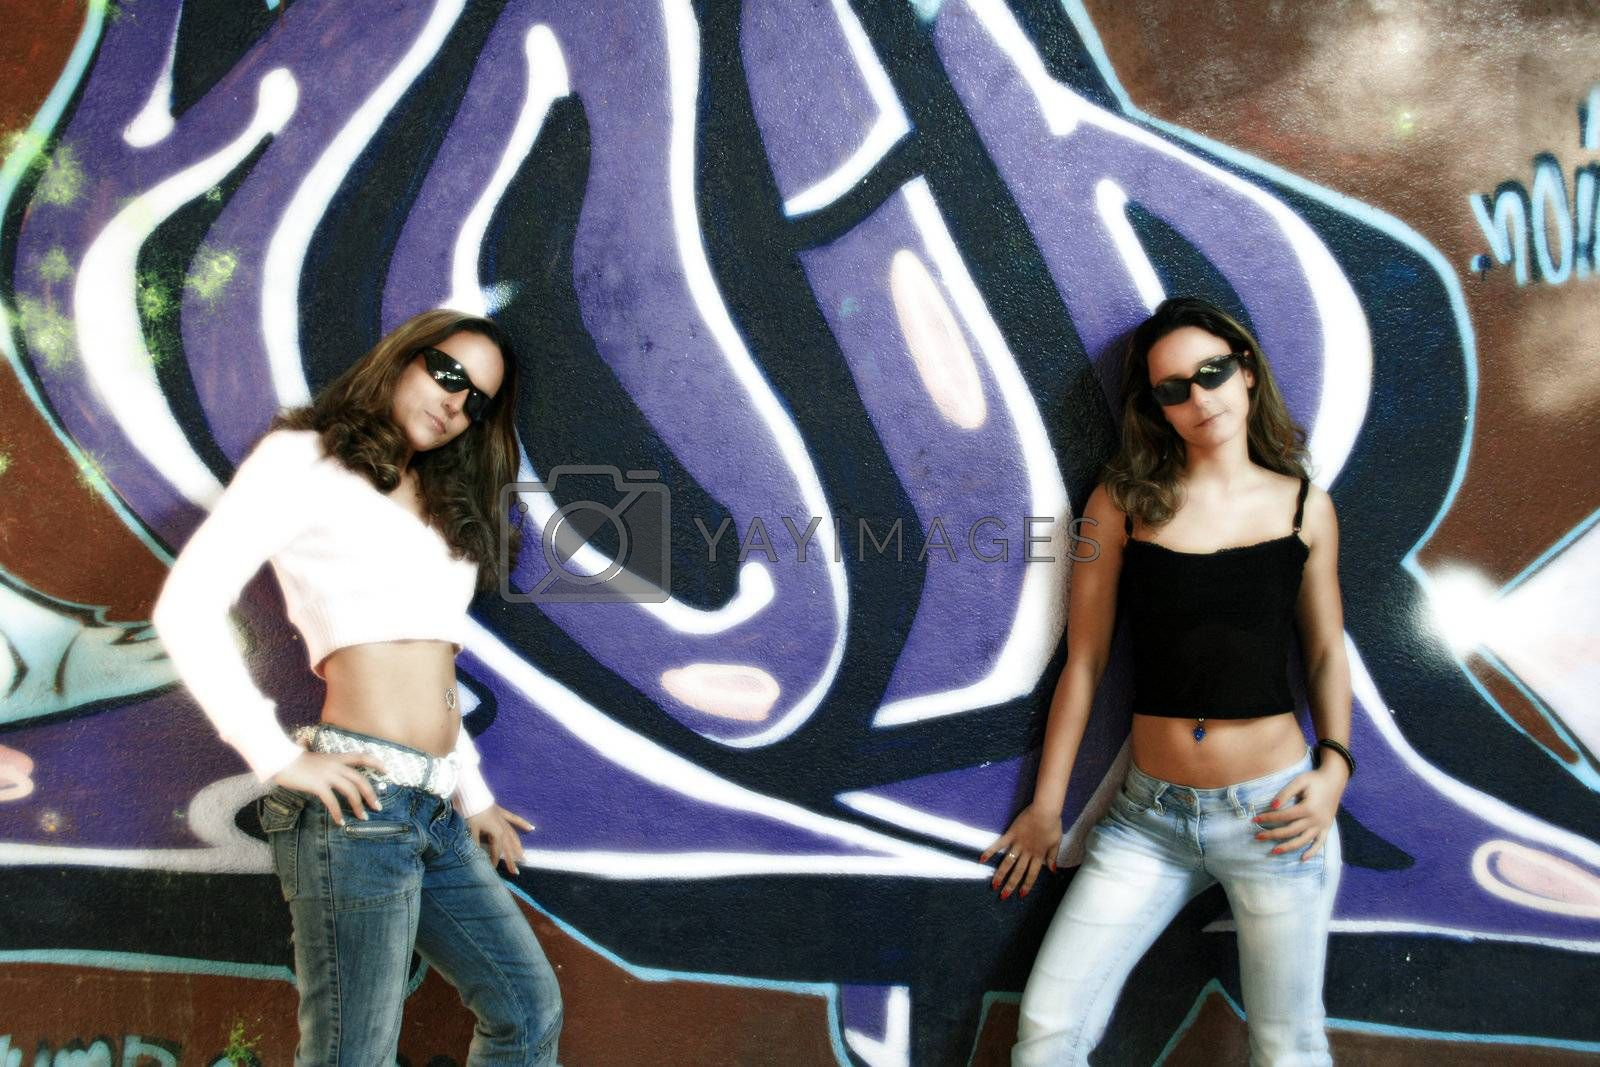 Fashion Girl over graffiti background